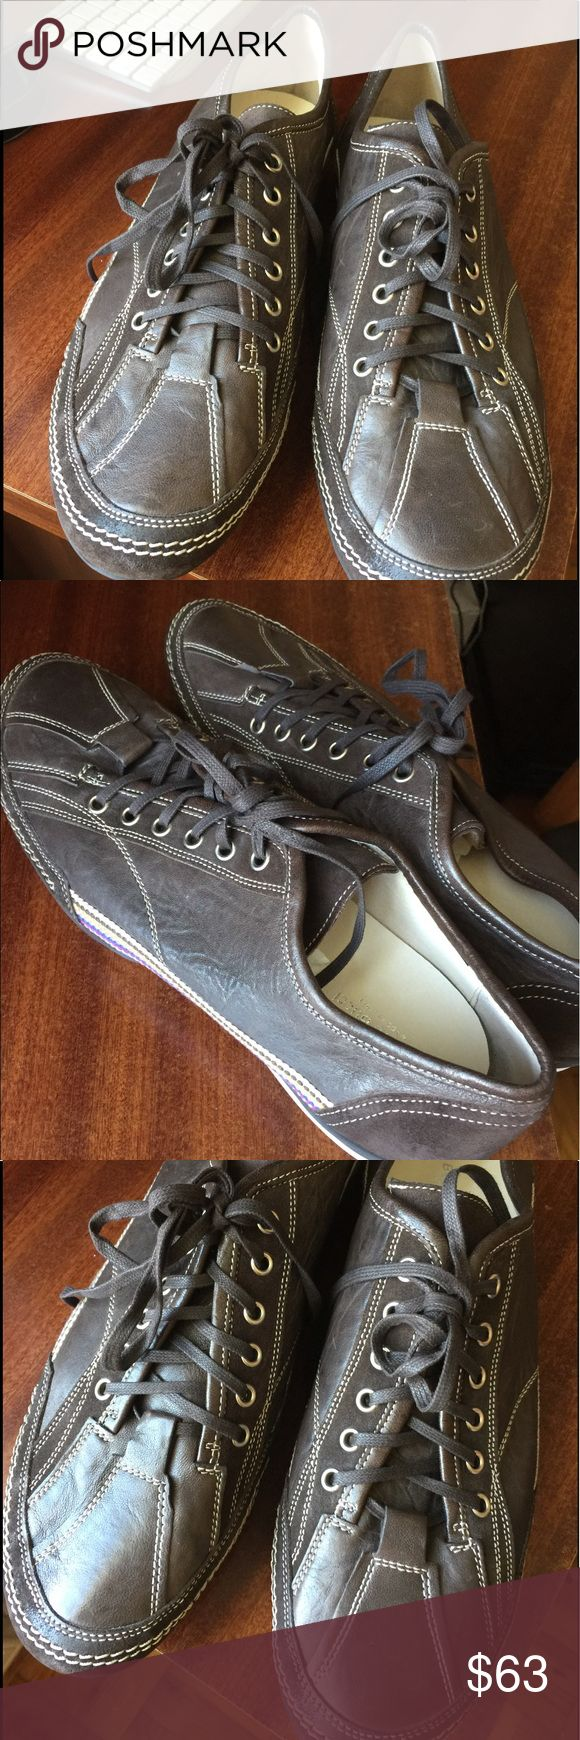 New BACCO BUCCI mans shoes  Made in Italy New Made in Italy Fashion Sneakers Brown leather and suede  Bacco Bucci Shoes